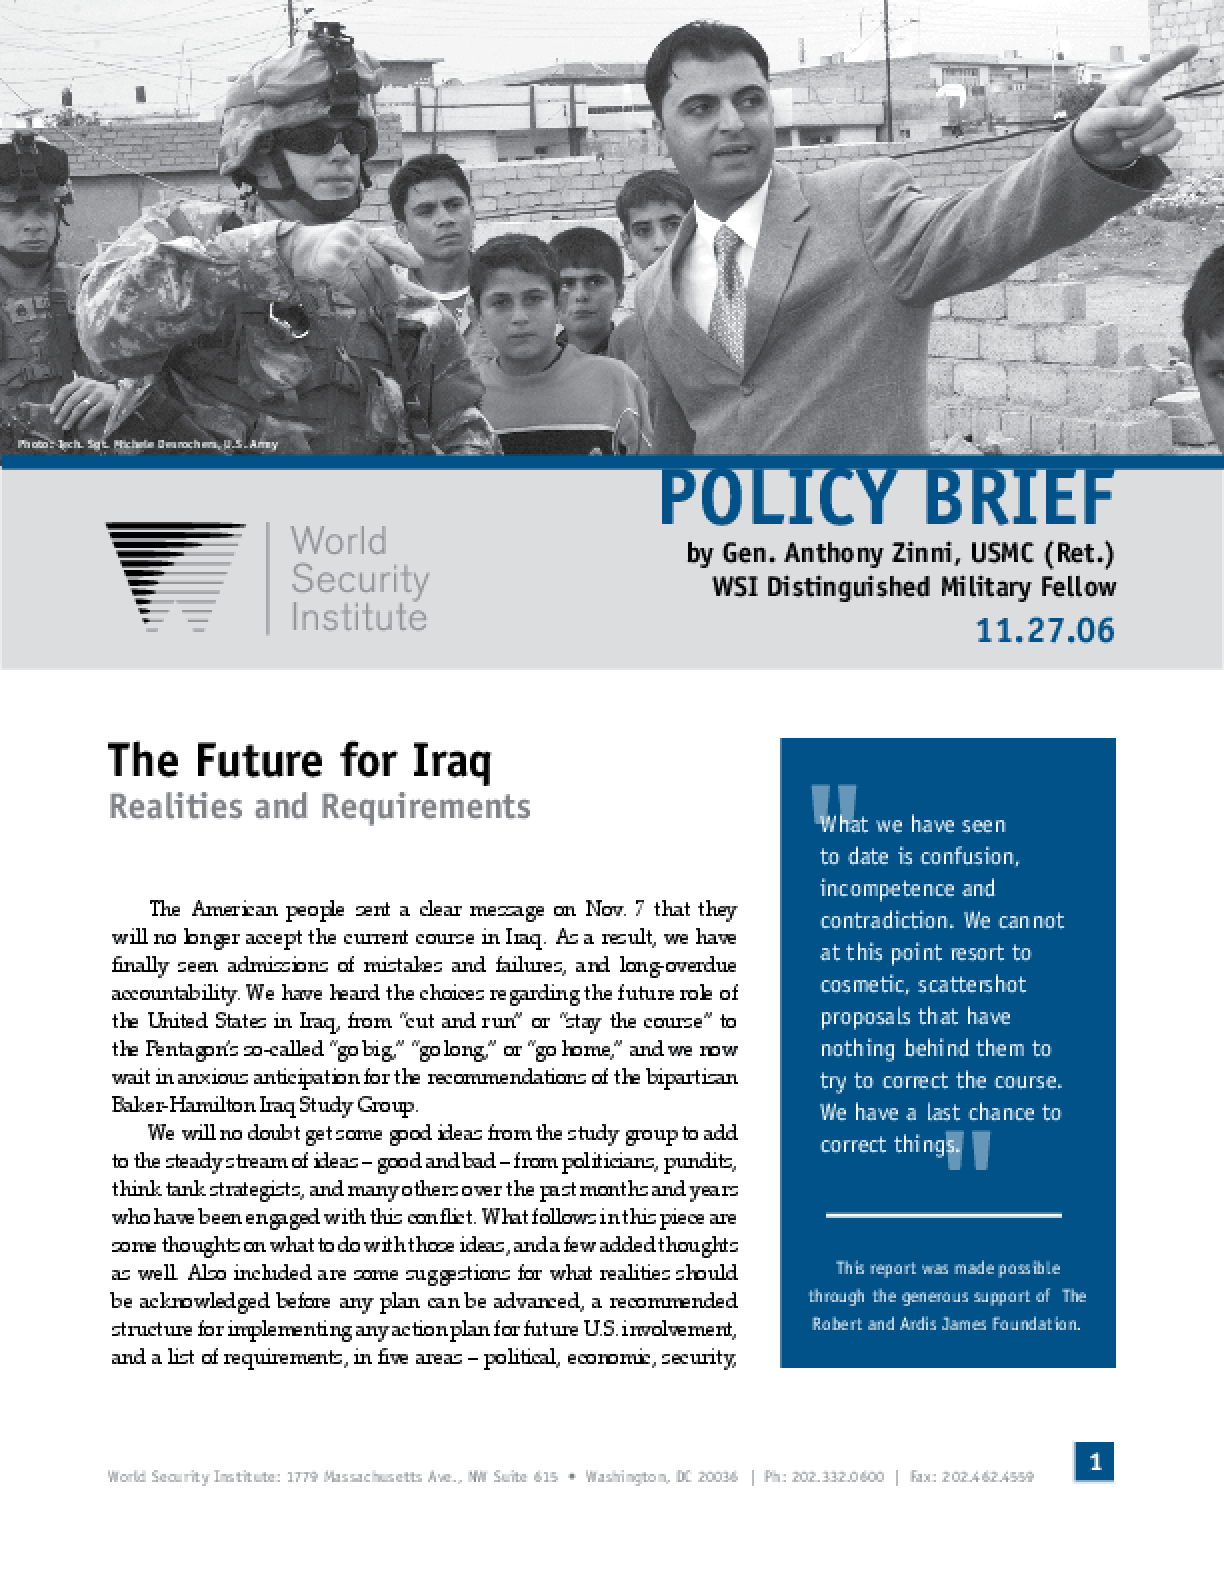 The Future for Iraq: Realities and Requirements